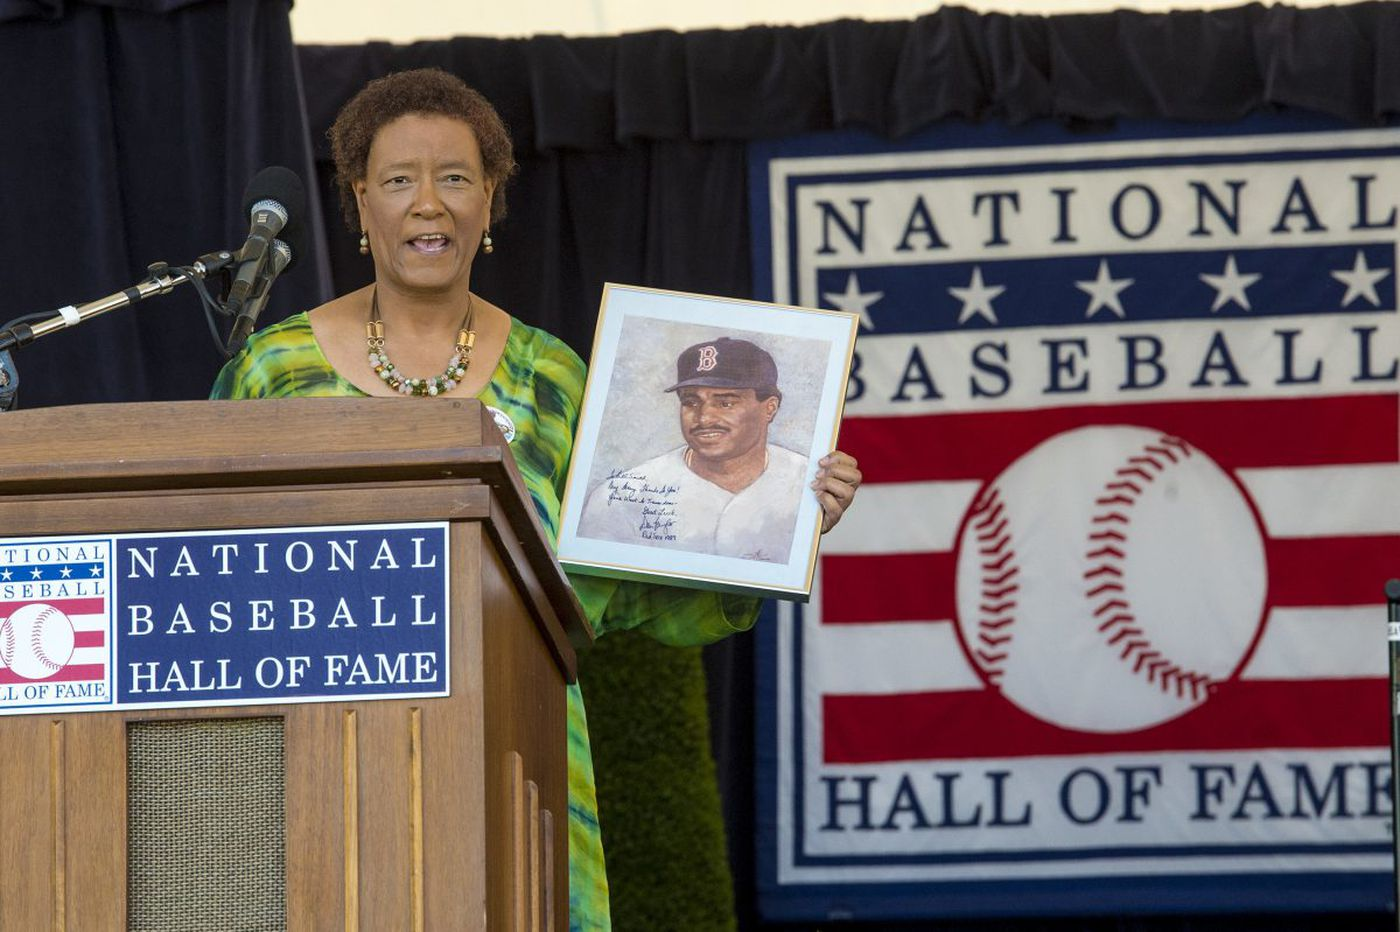 Claire Smith hits home run with Hall of Fame speech